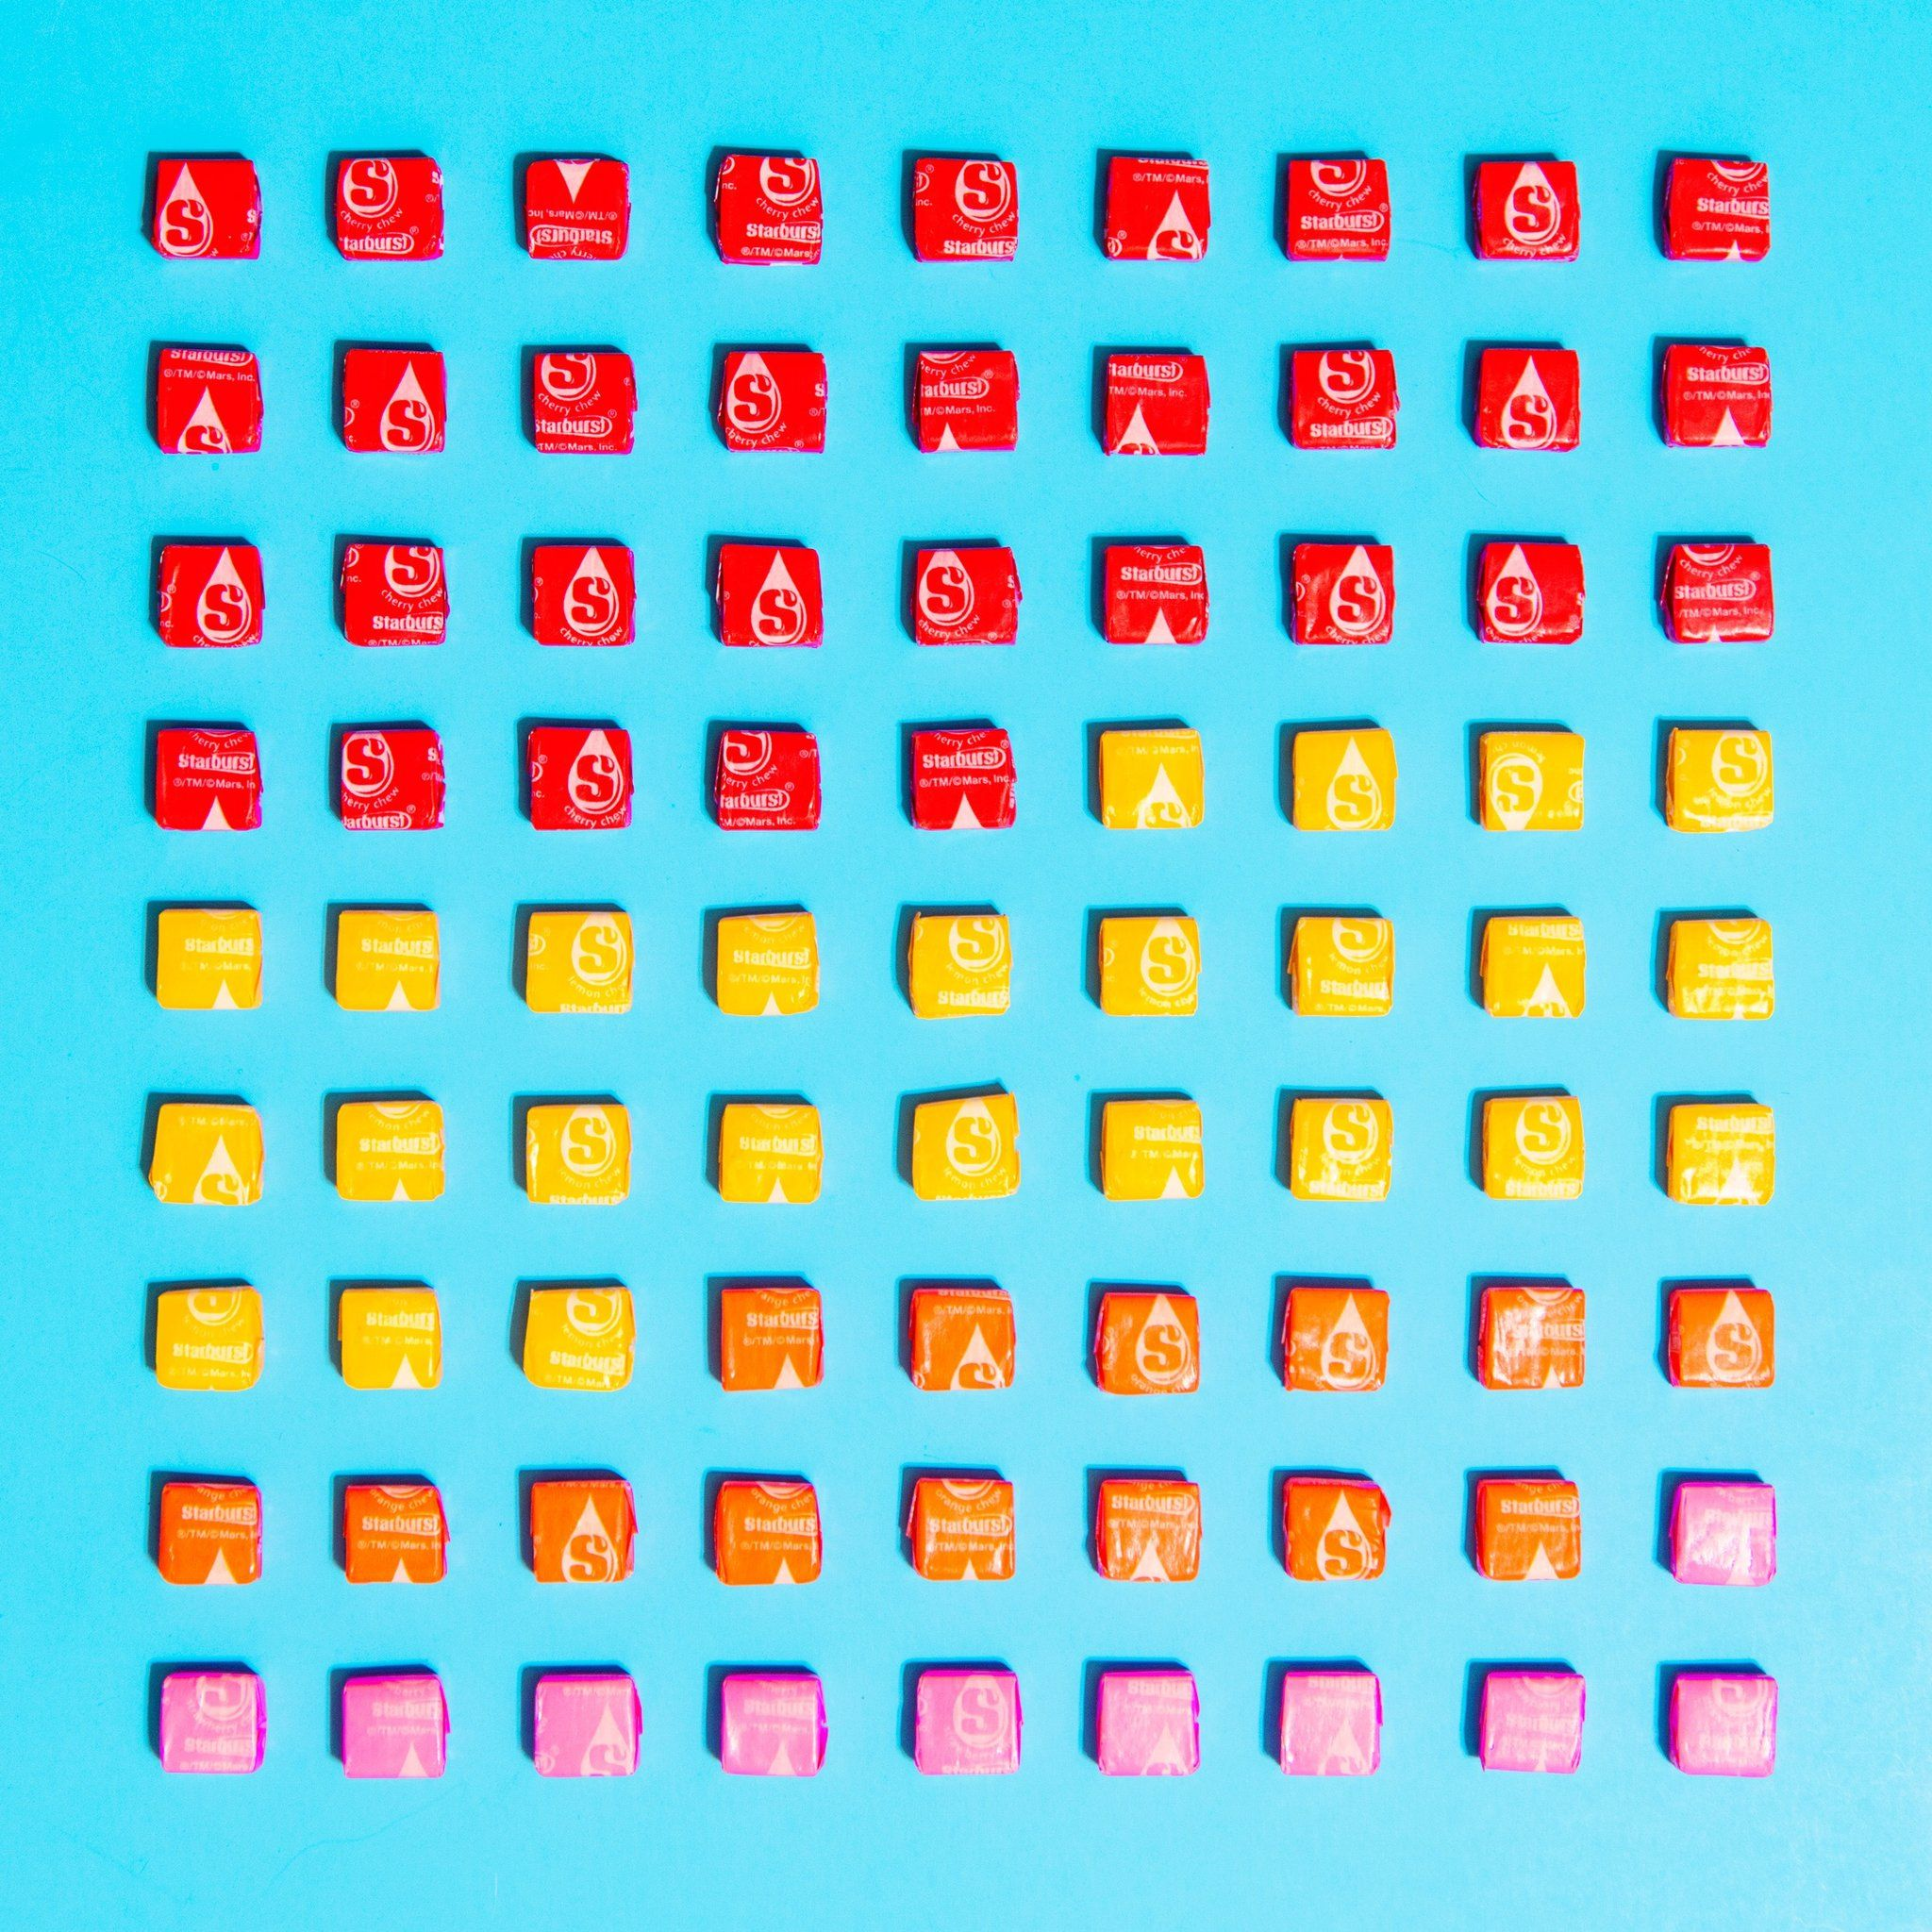 Photoshop Color Inspiration: #candygrid By Matt Crump - Storehouse